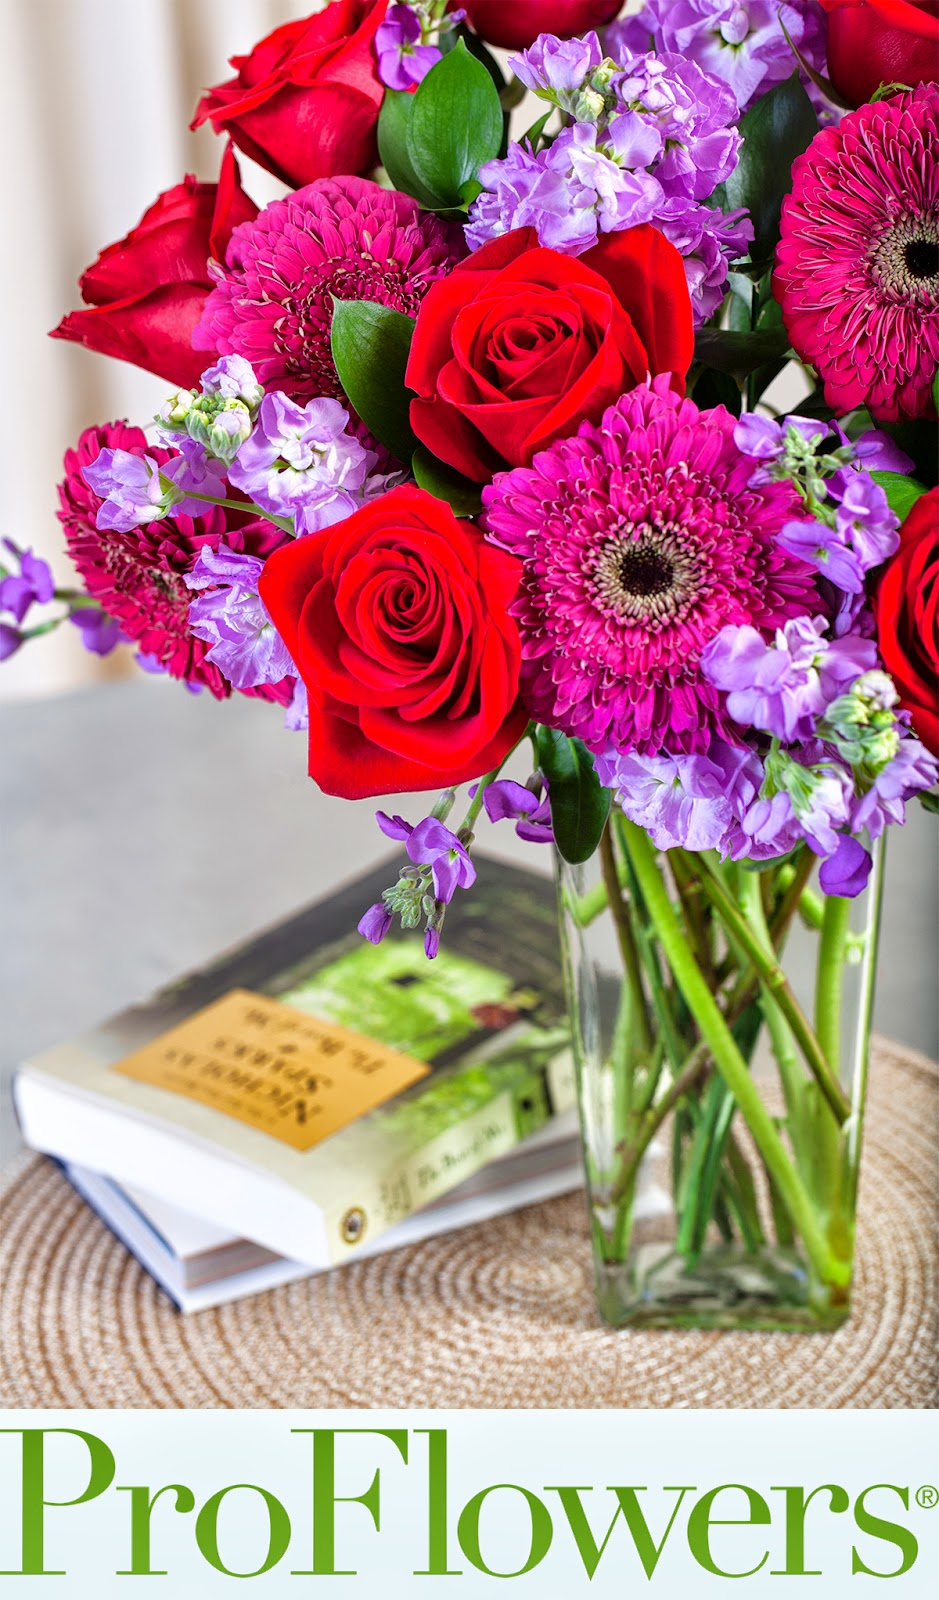 ProFlowers #TheBestOfMe Bouquet #Review #Giveaway